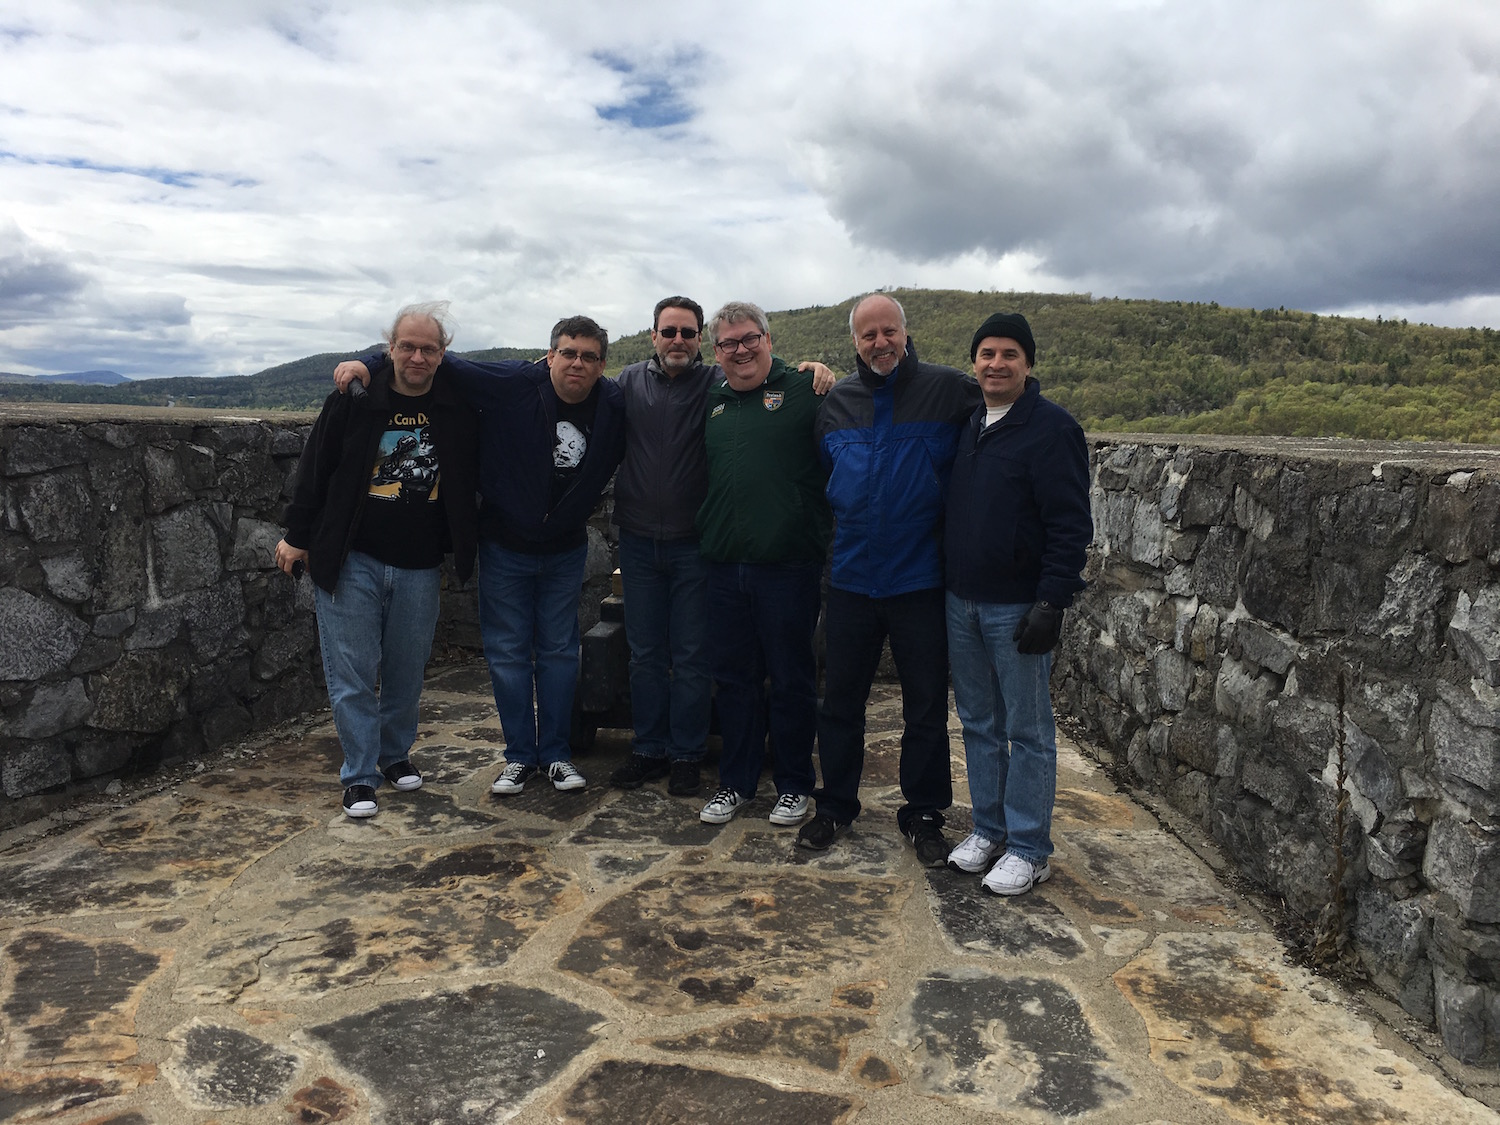 Writers on the Fort, From Left to Right:Scott Pearson, Bill Leisner, Bob Greenberger, Kevin Dilmore, Michael Jan Friedman, and DRG III ©2017 Karen Ragan-George